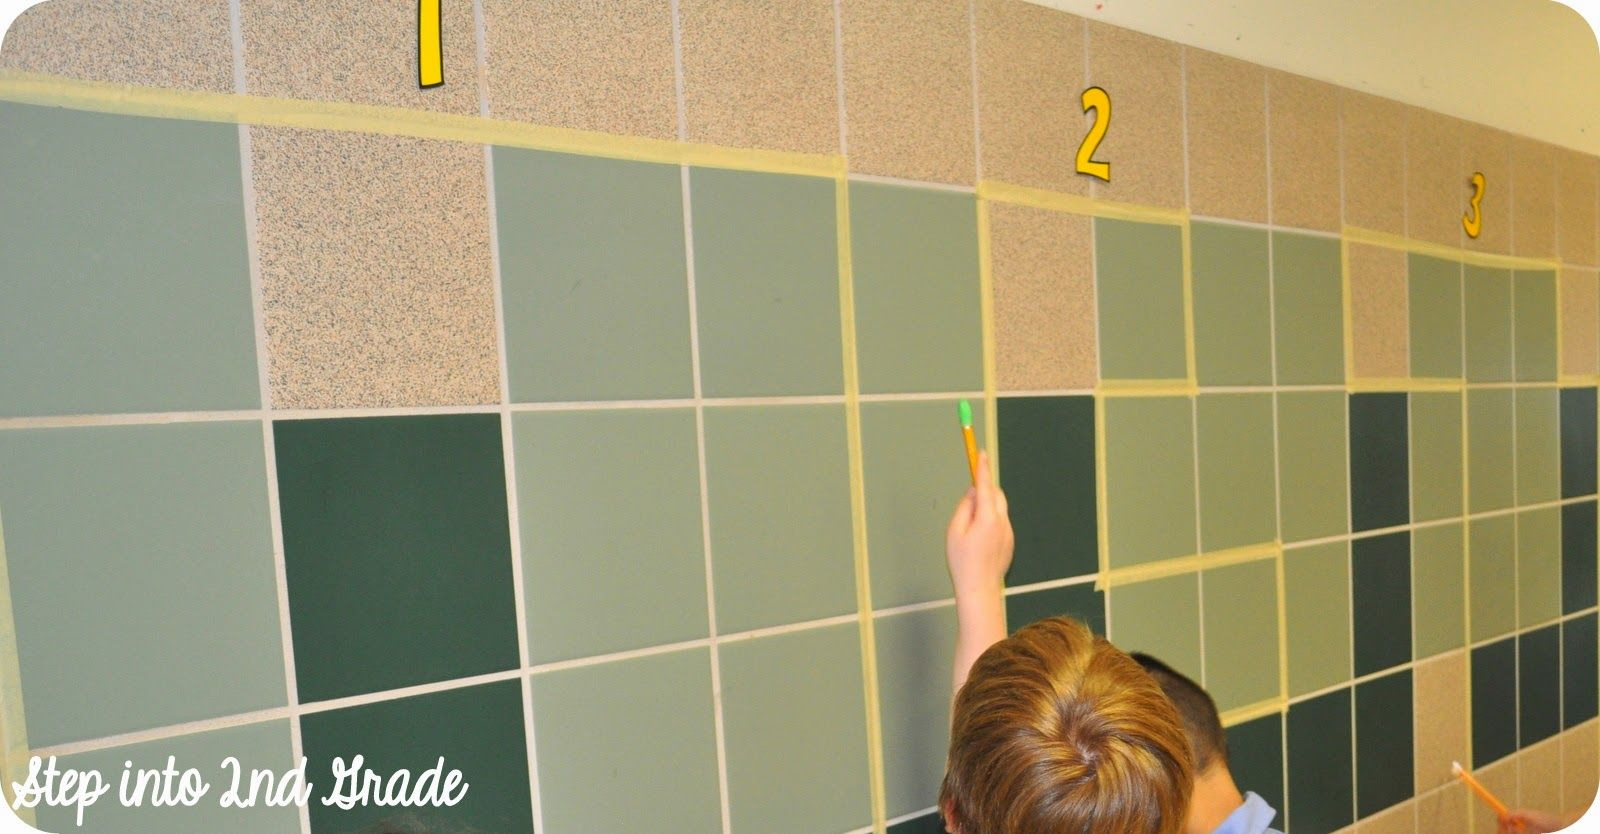 Find The Area And Perimeter Of The Shapes That Are Taped